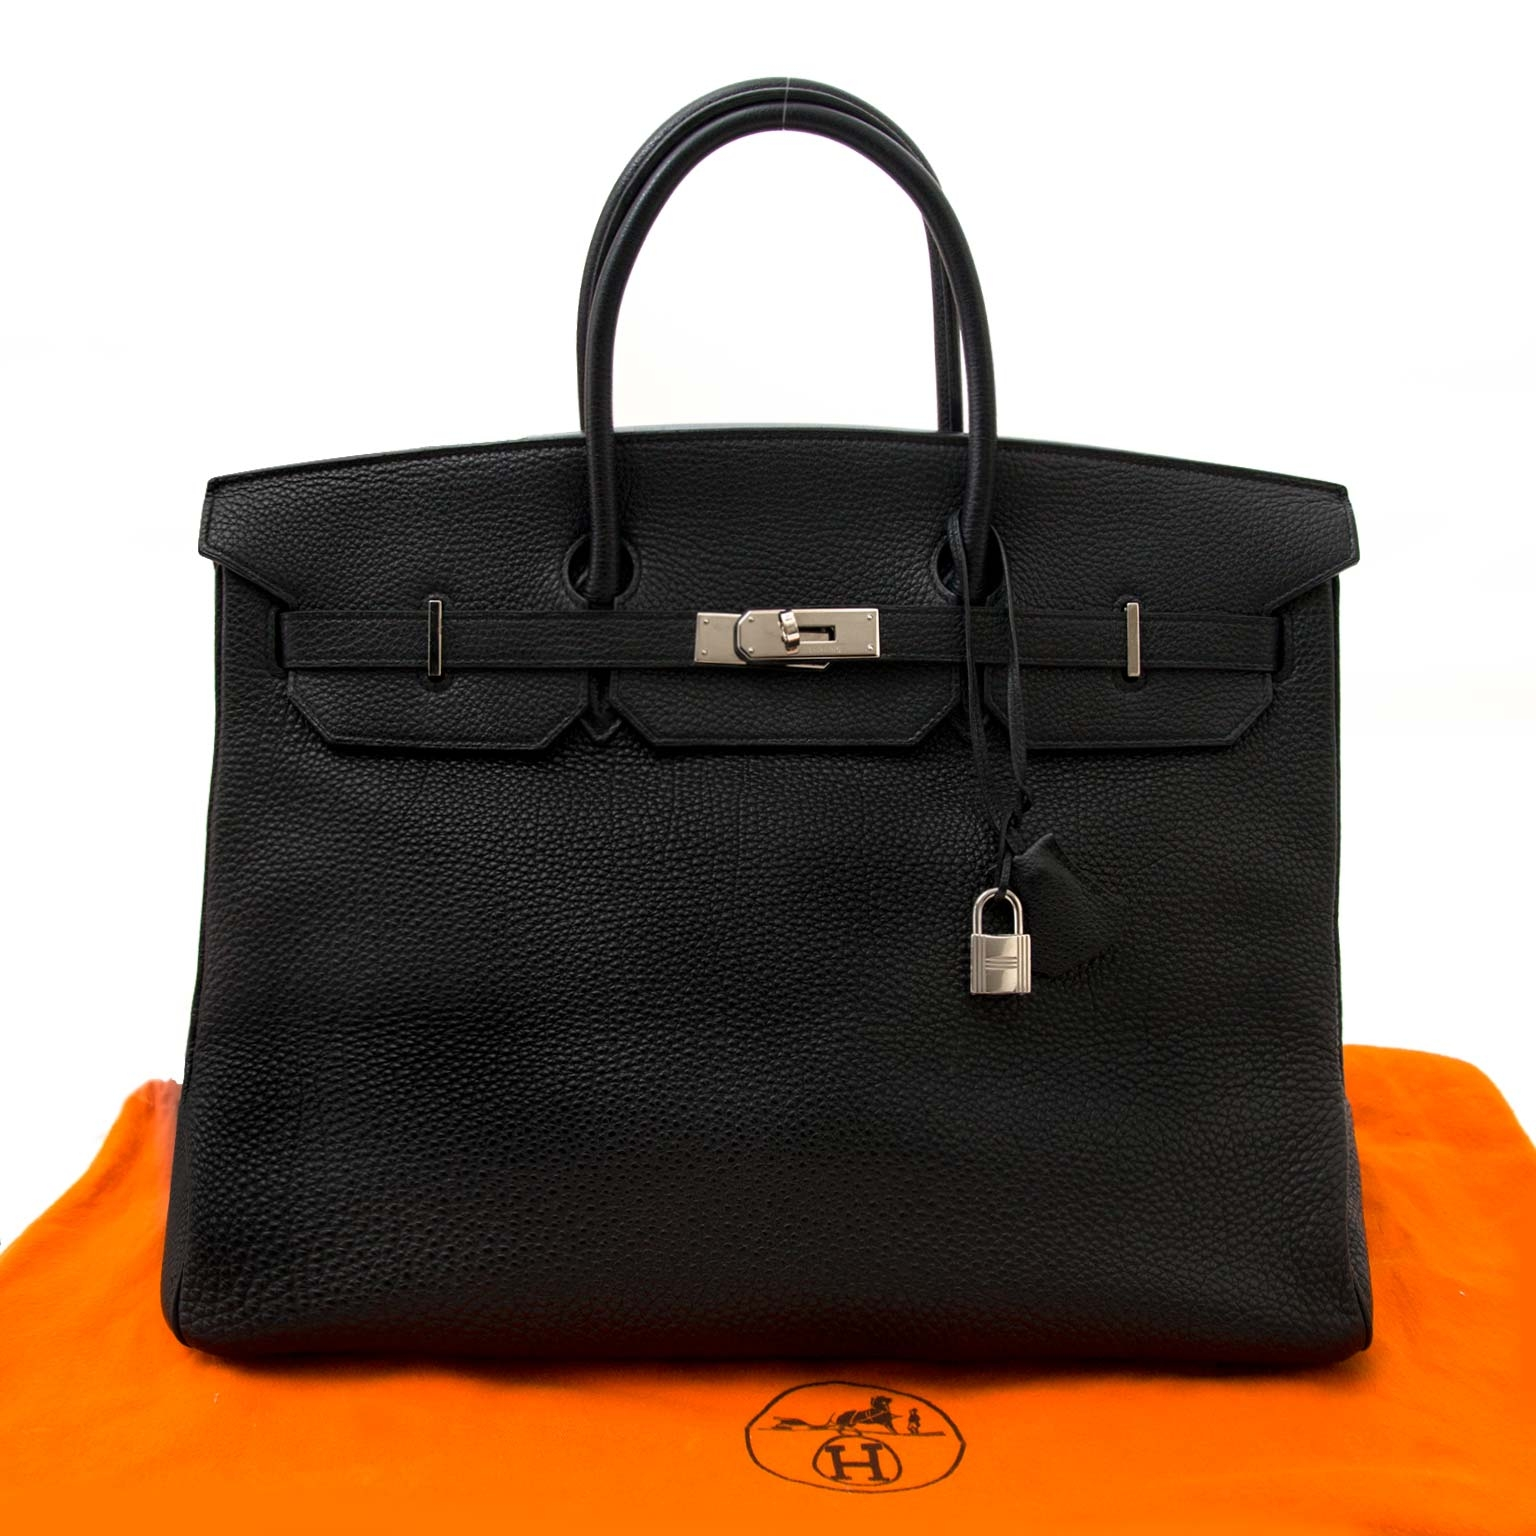 Hermès Birkin 40 Togo Black PHW now for the best price online at labellov.com